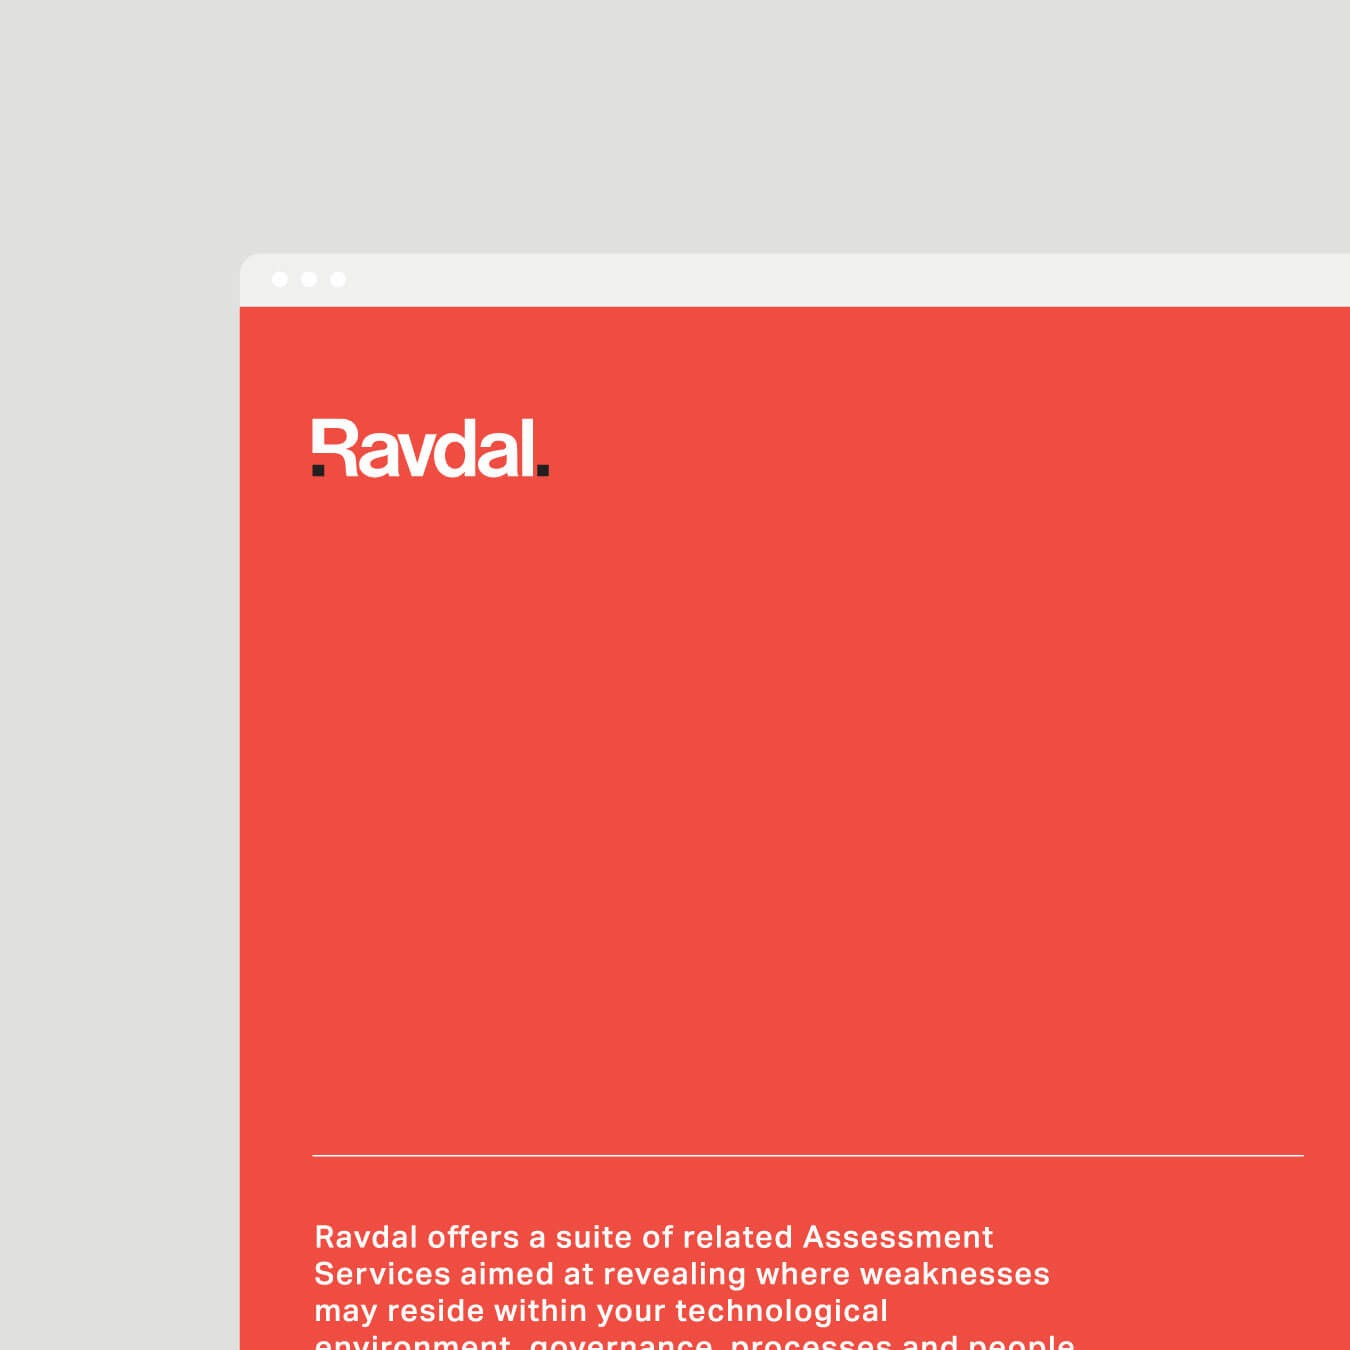 Ravdal website